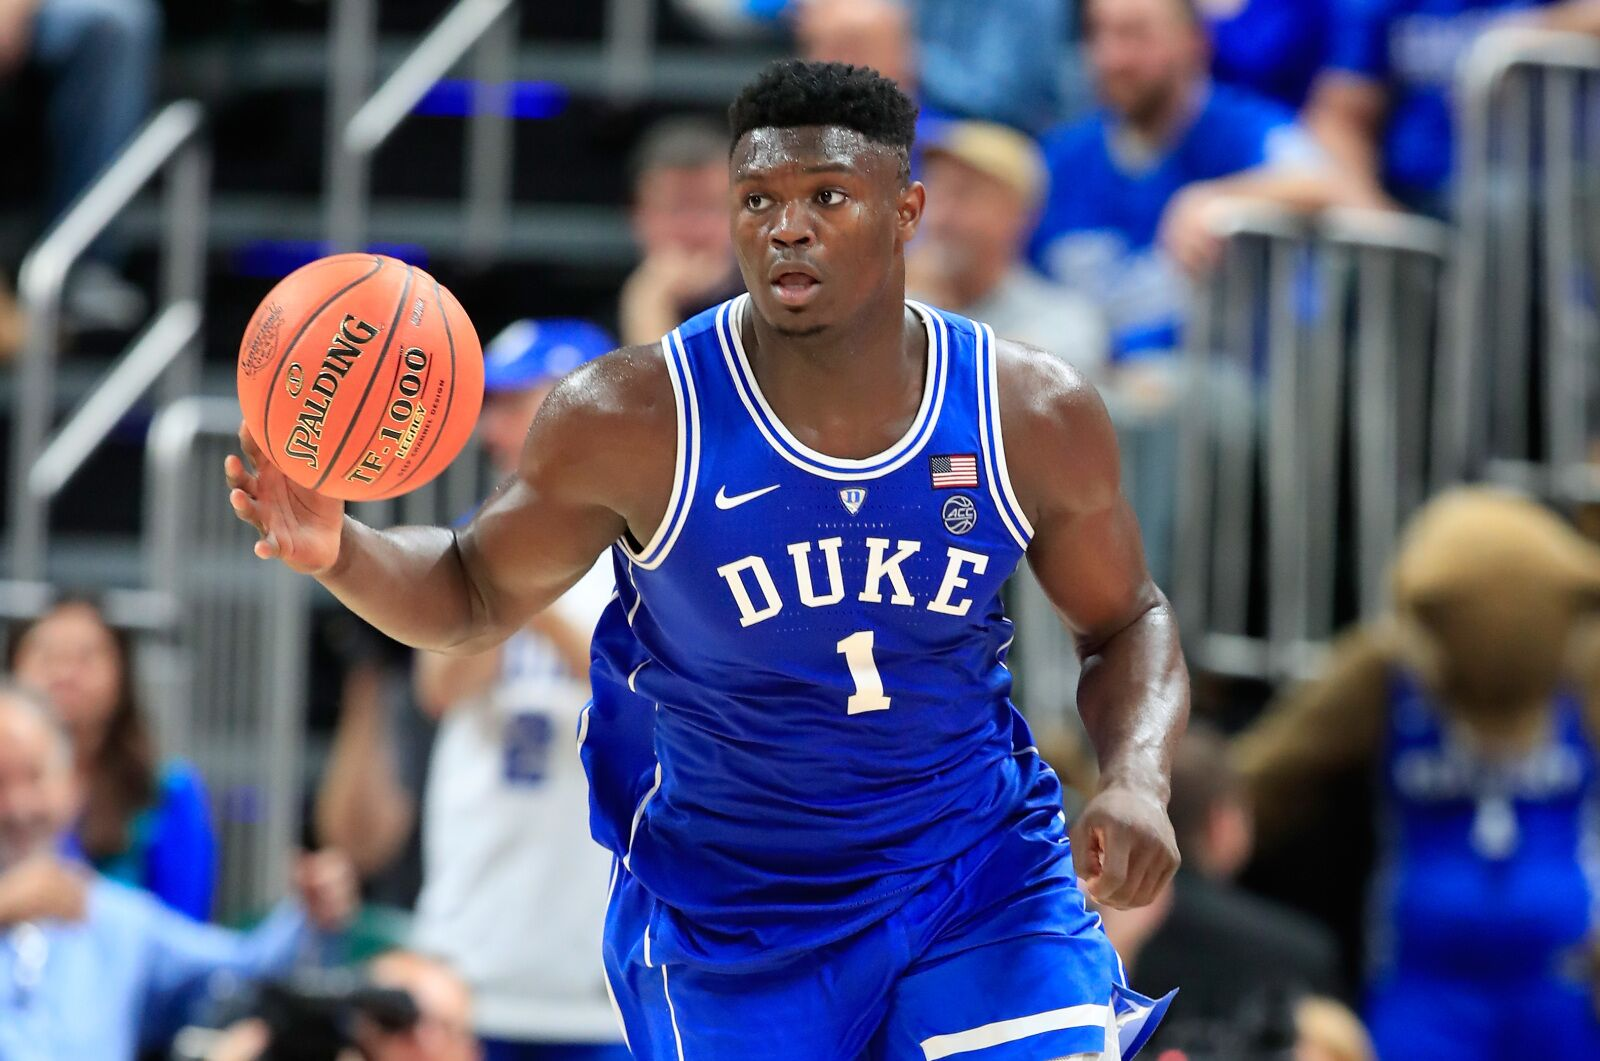 Duke basketball fans need to check out ESPN+